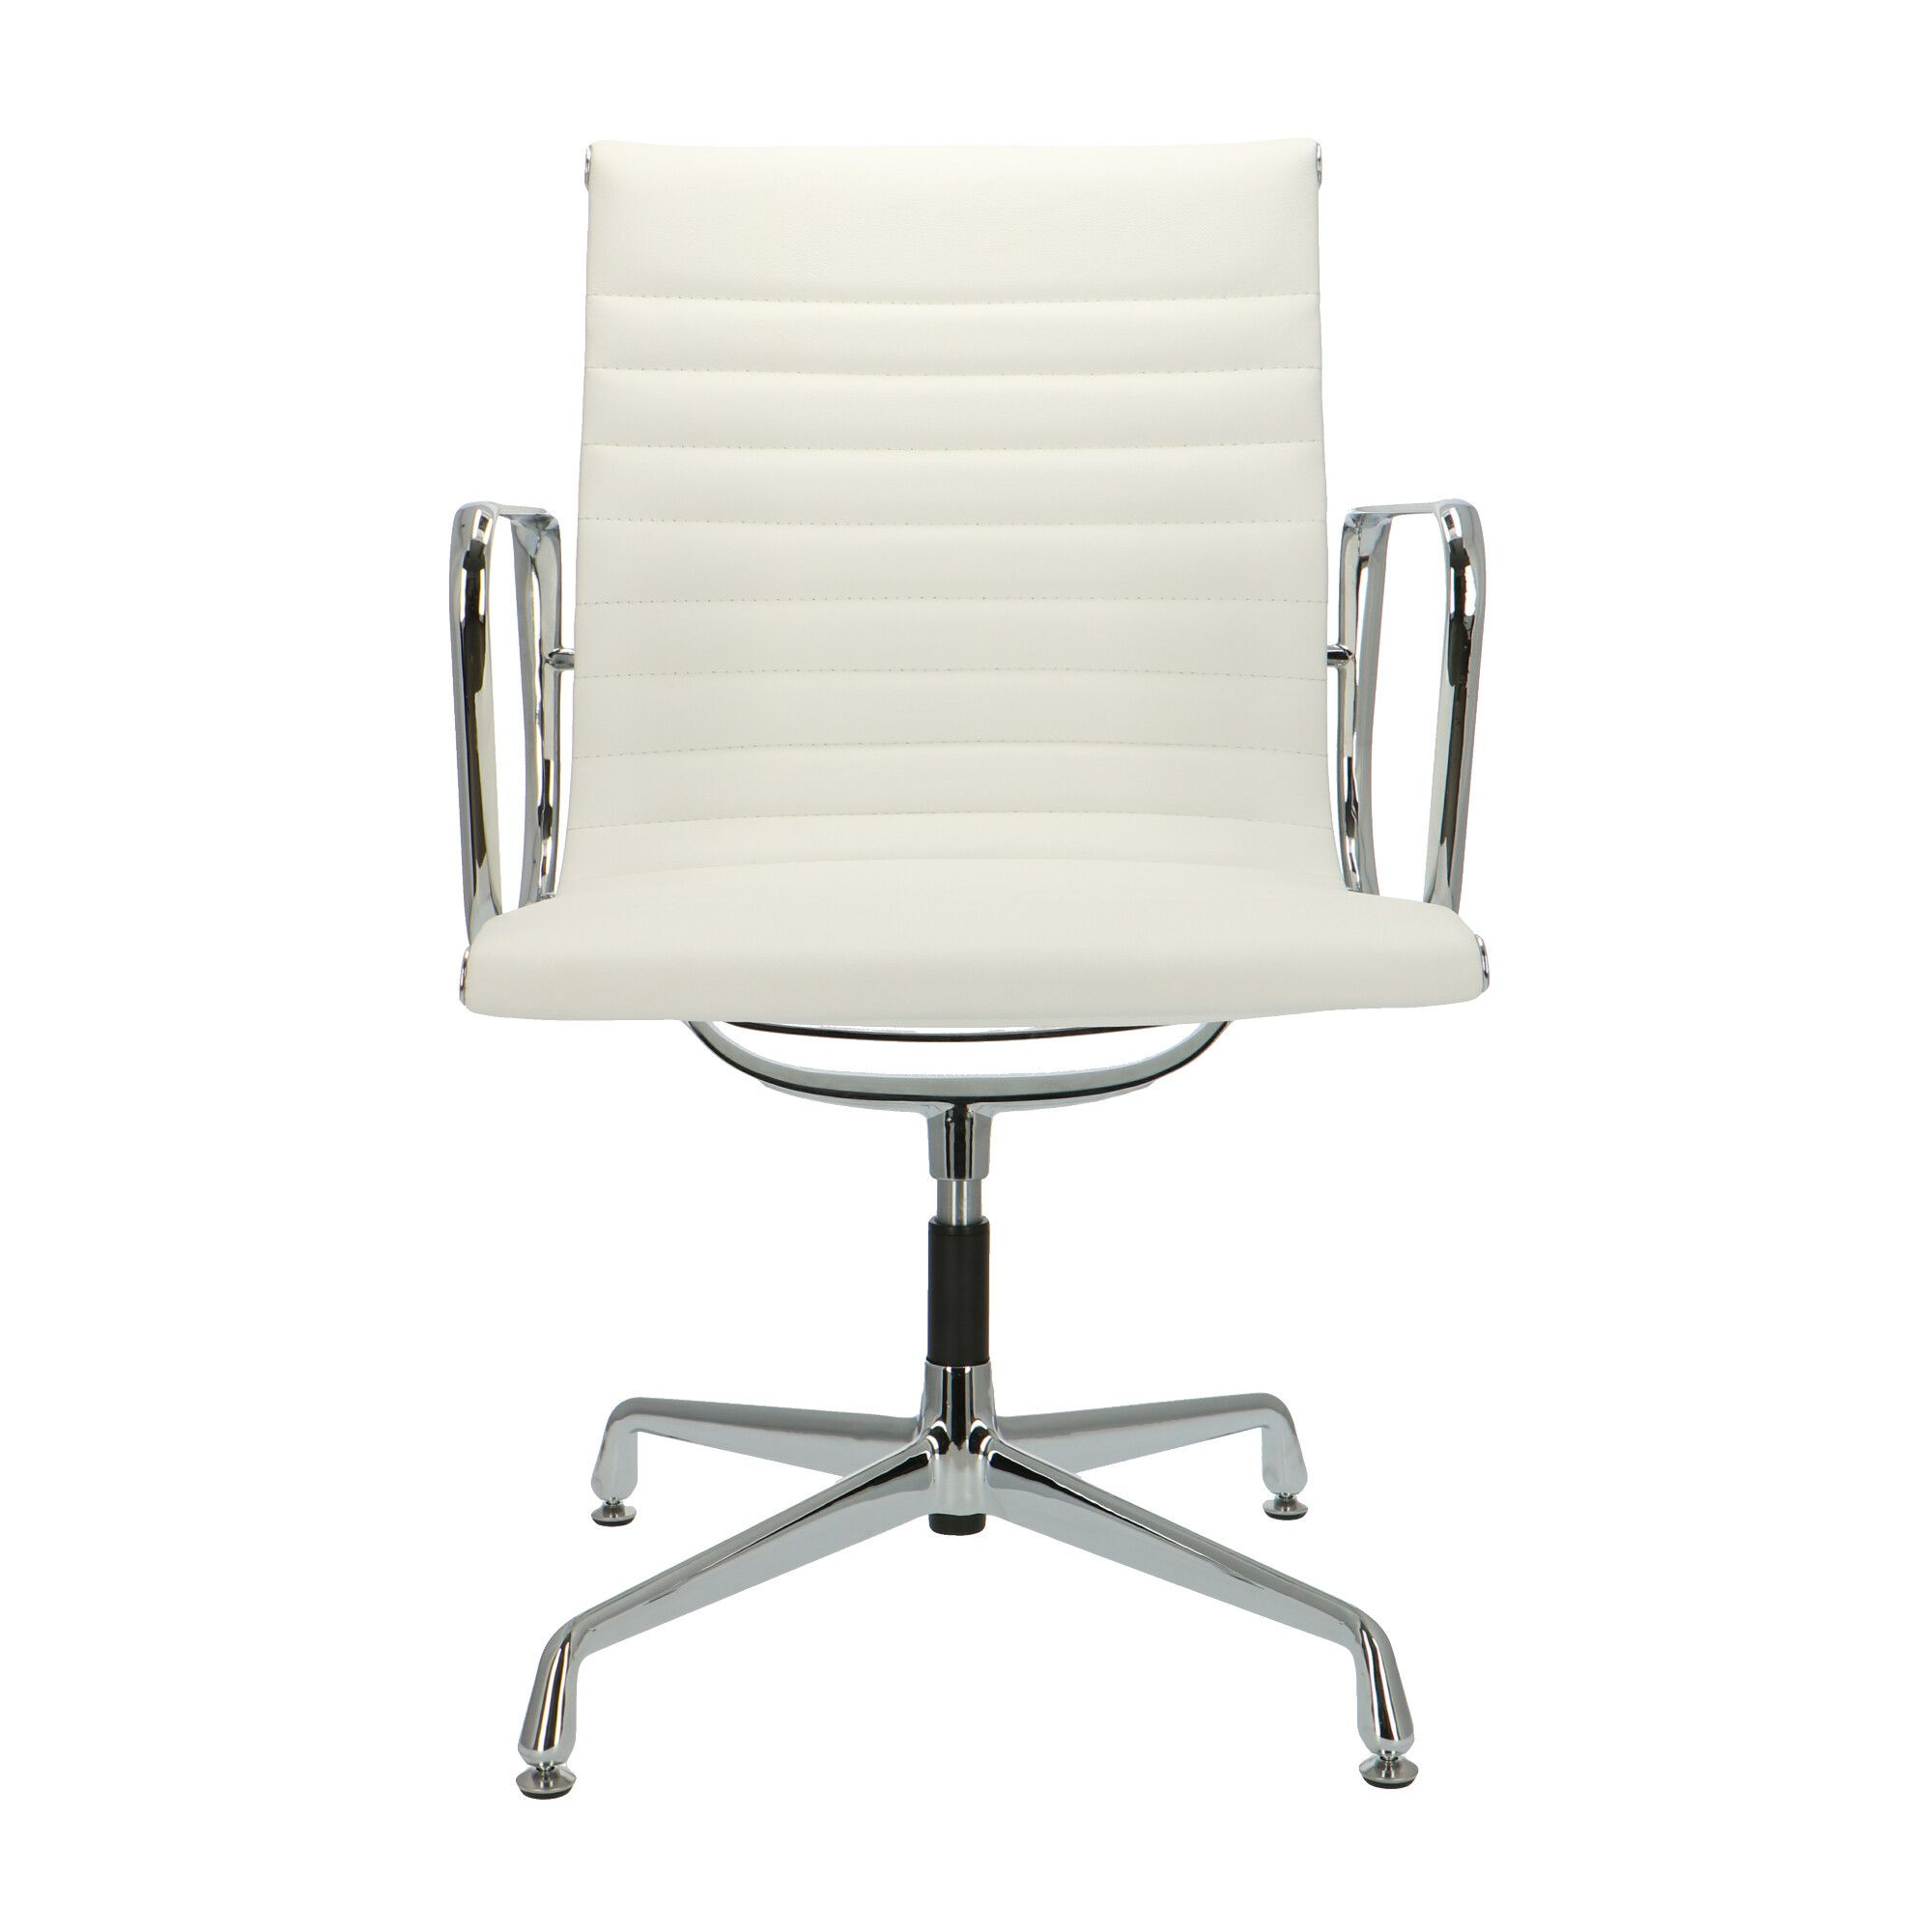 Chair Eames Eames Office Chair Ea 108 White Skai | Popfurniture.com